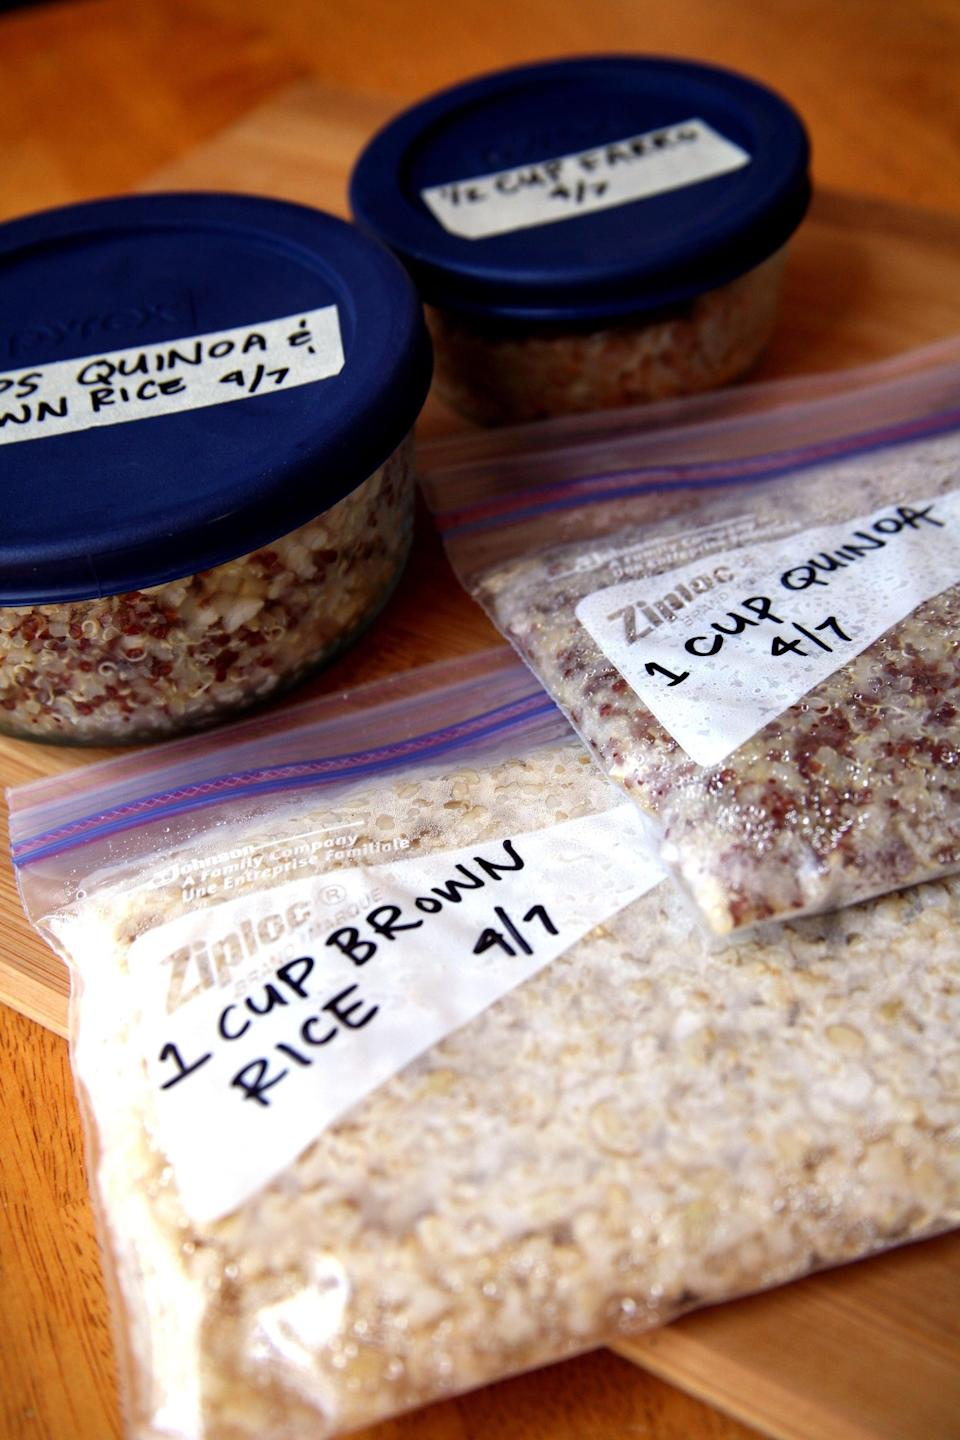 "<p>When you don't have tons of time to prepare dinner, you can avoid ordering high-calorie takeout by keeping healthy foods in the freezer you can reheat for quick meals like <a href=""https://www.popsugar.com/fitness/How-Freeze-Cooked-Whole-Grains-37229880"" class=""link rapid-noclick-resp"" rel=""nofollow noopener"" target=""_blank"" data-ylk=""slk:frozen grains"">frozen grains</a> or these <a href=""https://www.popsugar.com/fitness/Spaghetti-Squash-Lentils-40654750"" class=""link rapid-noclick-resp"" rel=""nofollow noopener"" target=""_blank"" data-ylk=""slk:maple cumin lentils"">maple cumin lentils</a>.</p>"